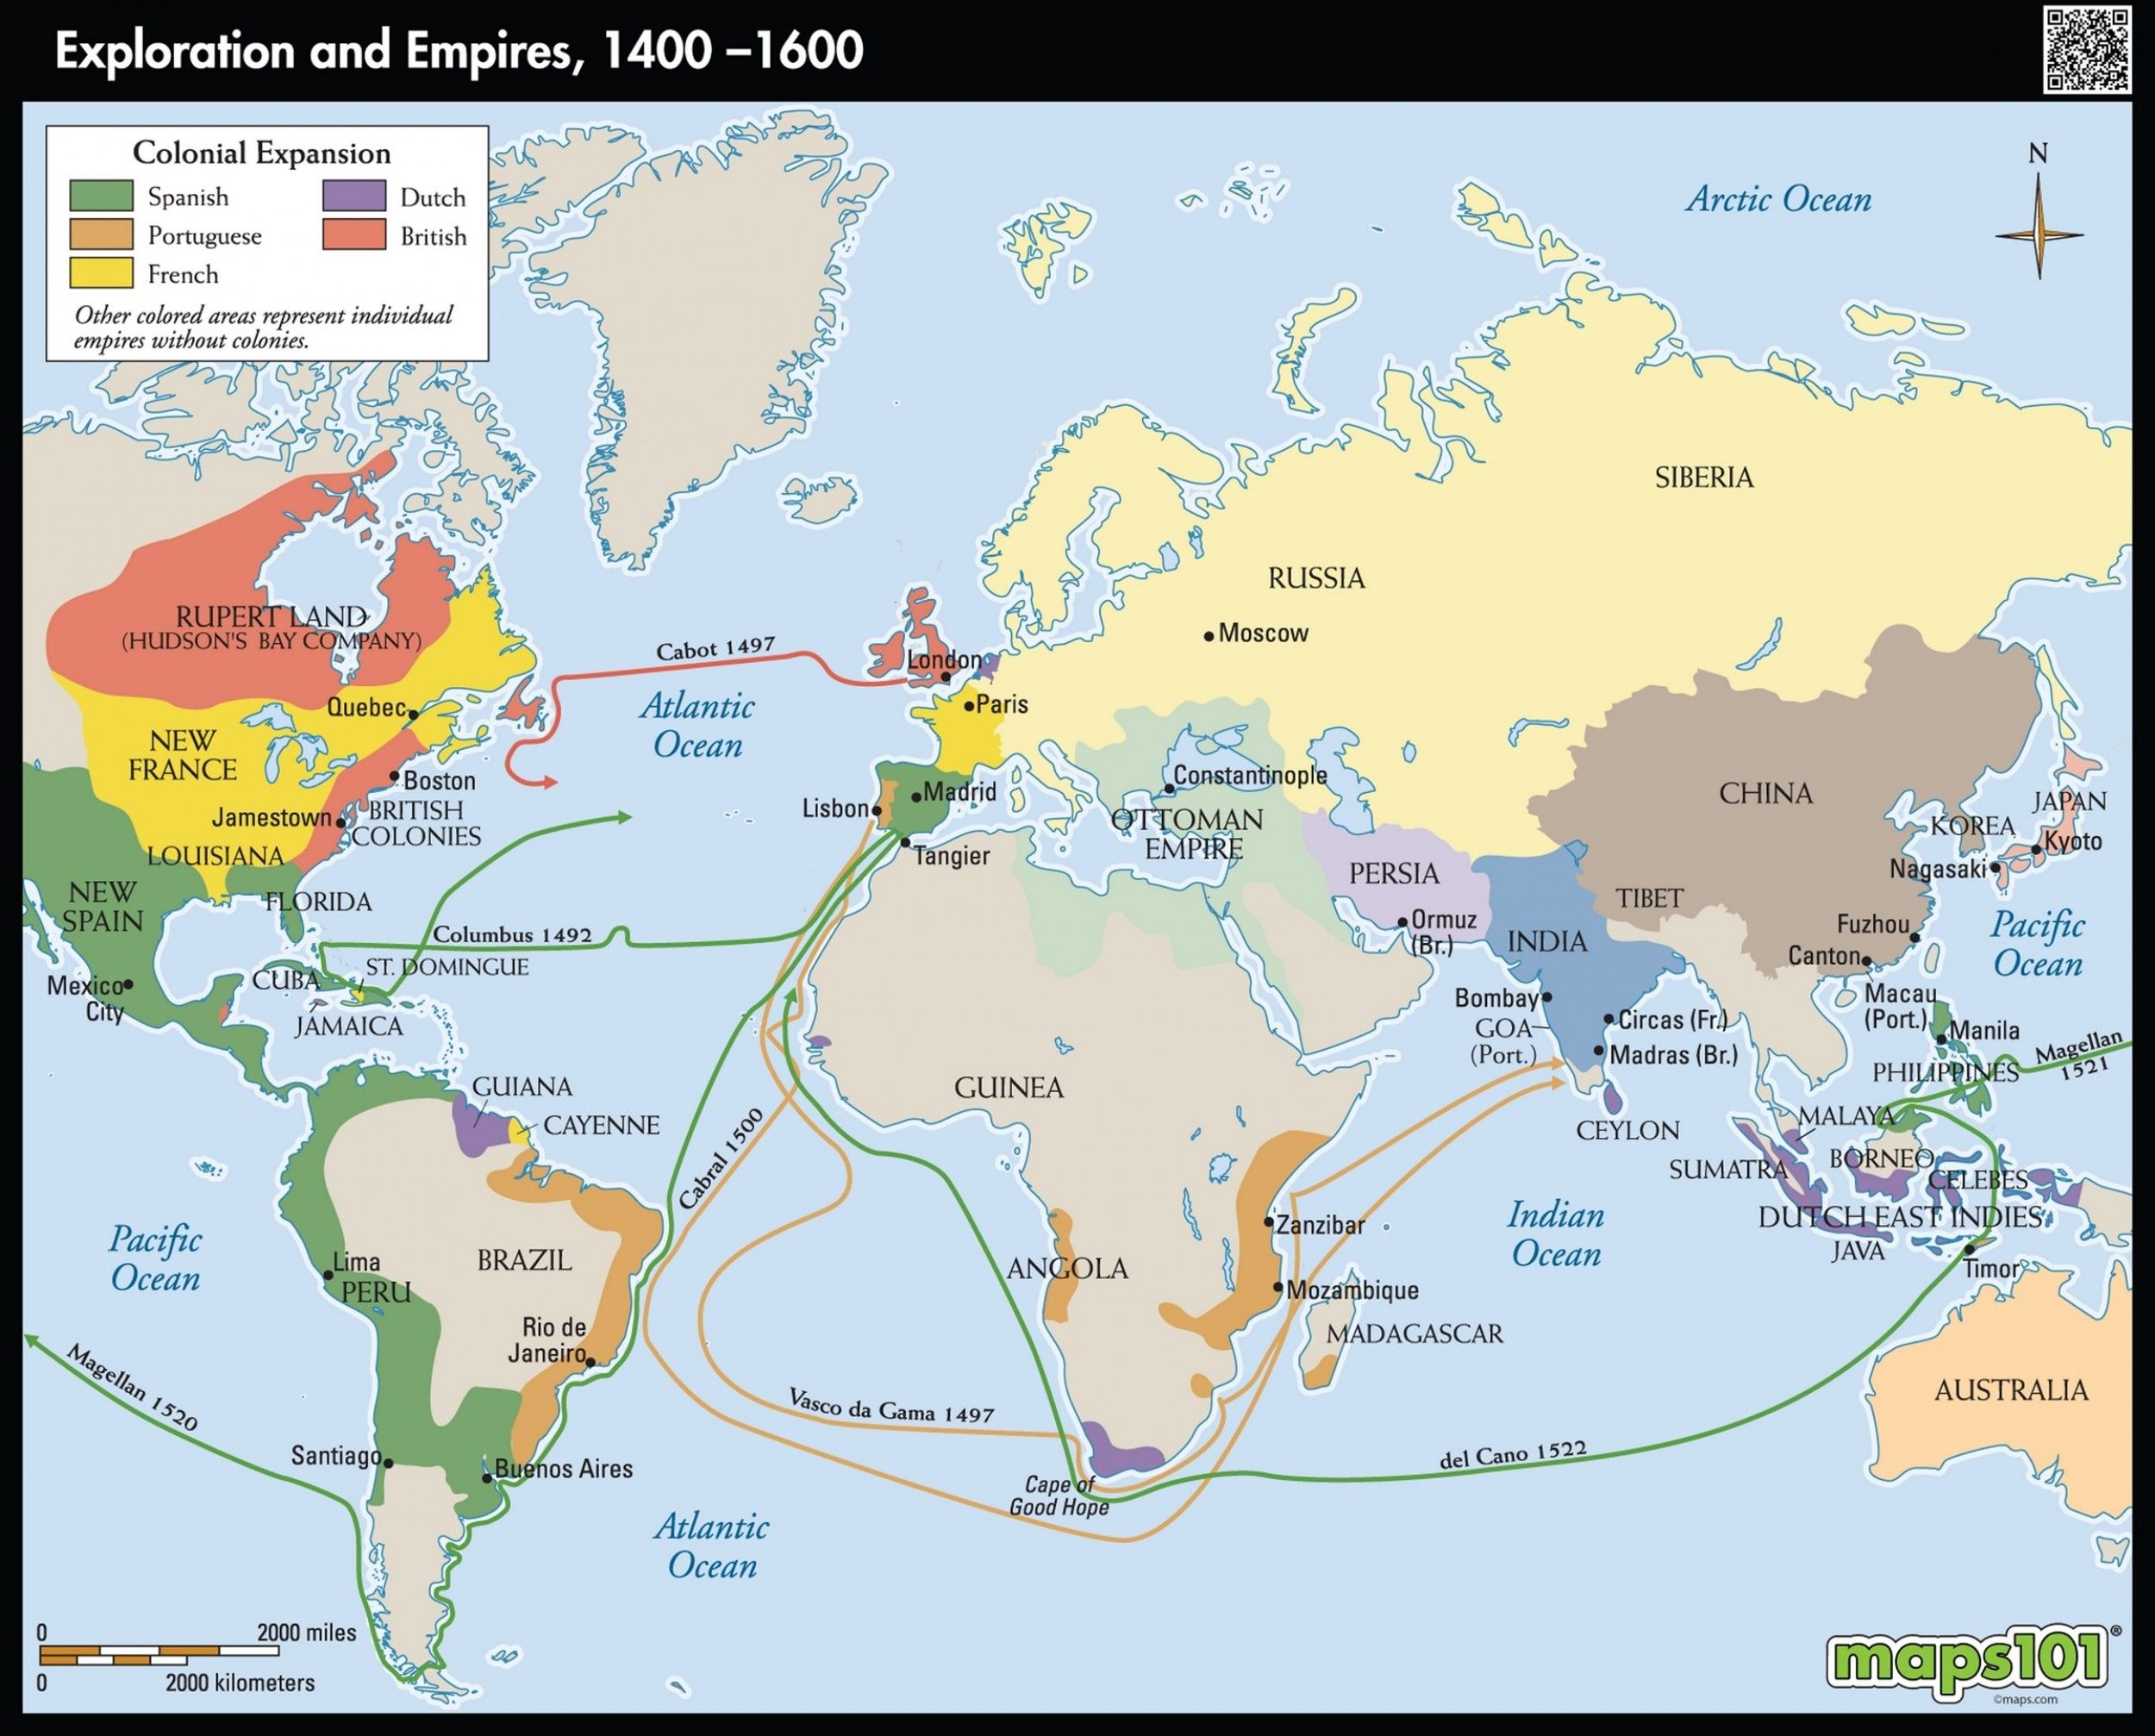 Exploration and colonization of European Empires 1400-1600 | General ...